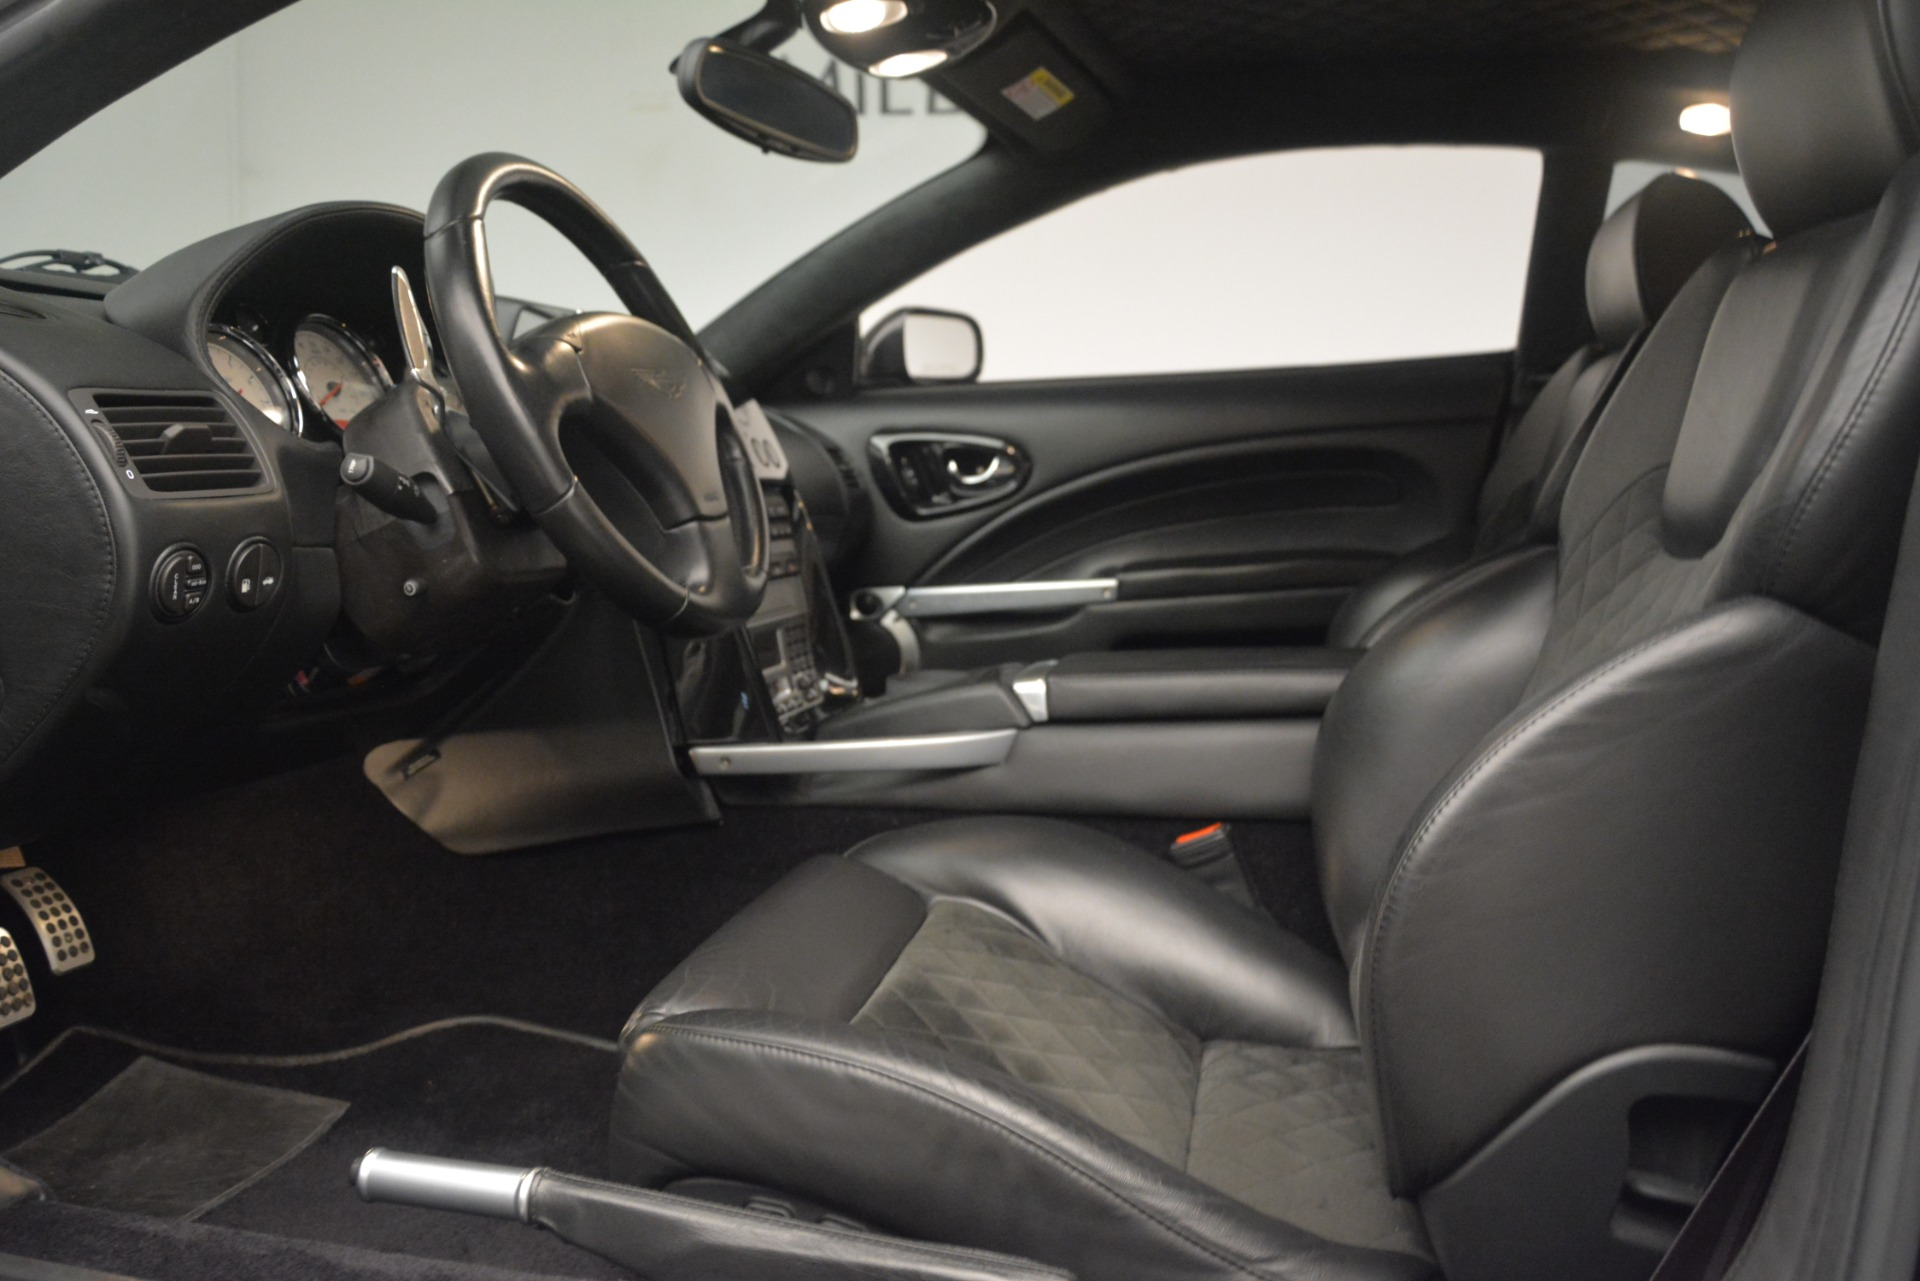 Used 2004 Aston Martin V12 Vanquish  For Sale In Greenwich, CT 3160_p12